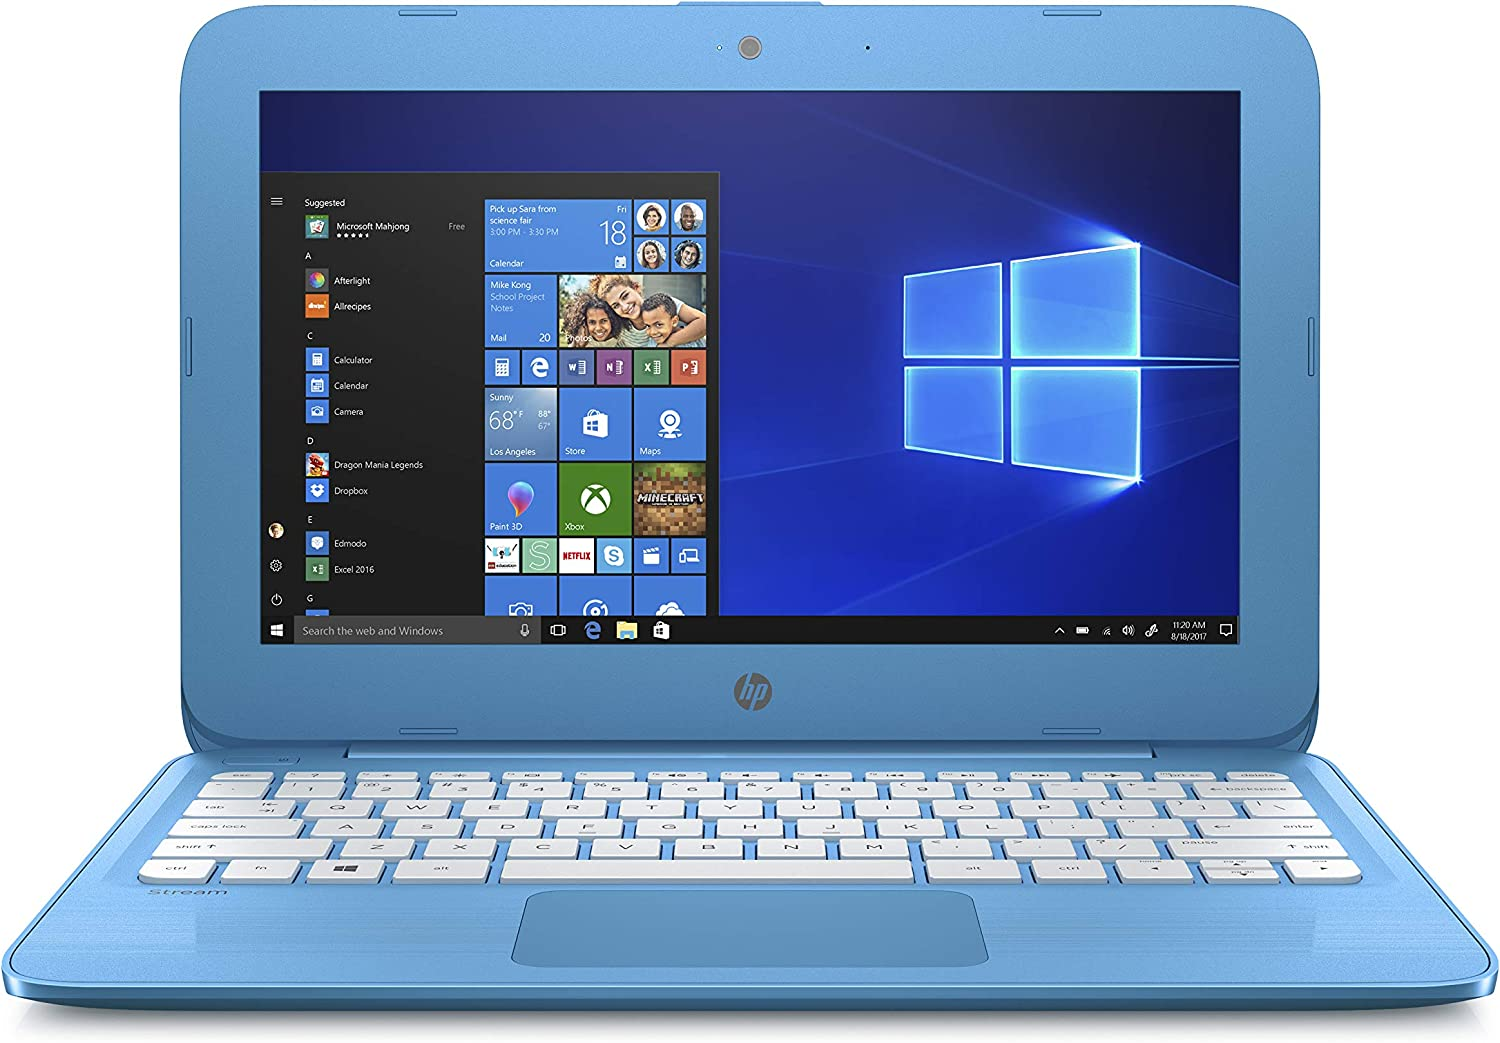 HP Stream 11-inch Laptop, Intel Celeron N3060 Processor, 4 GB SDRAM Memory, 32 GB eMMC storage, Windows 10 Home in S Mode with Office 365 Personal for one year (11-ah010nr, Aqua Blue)